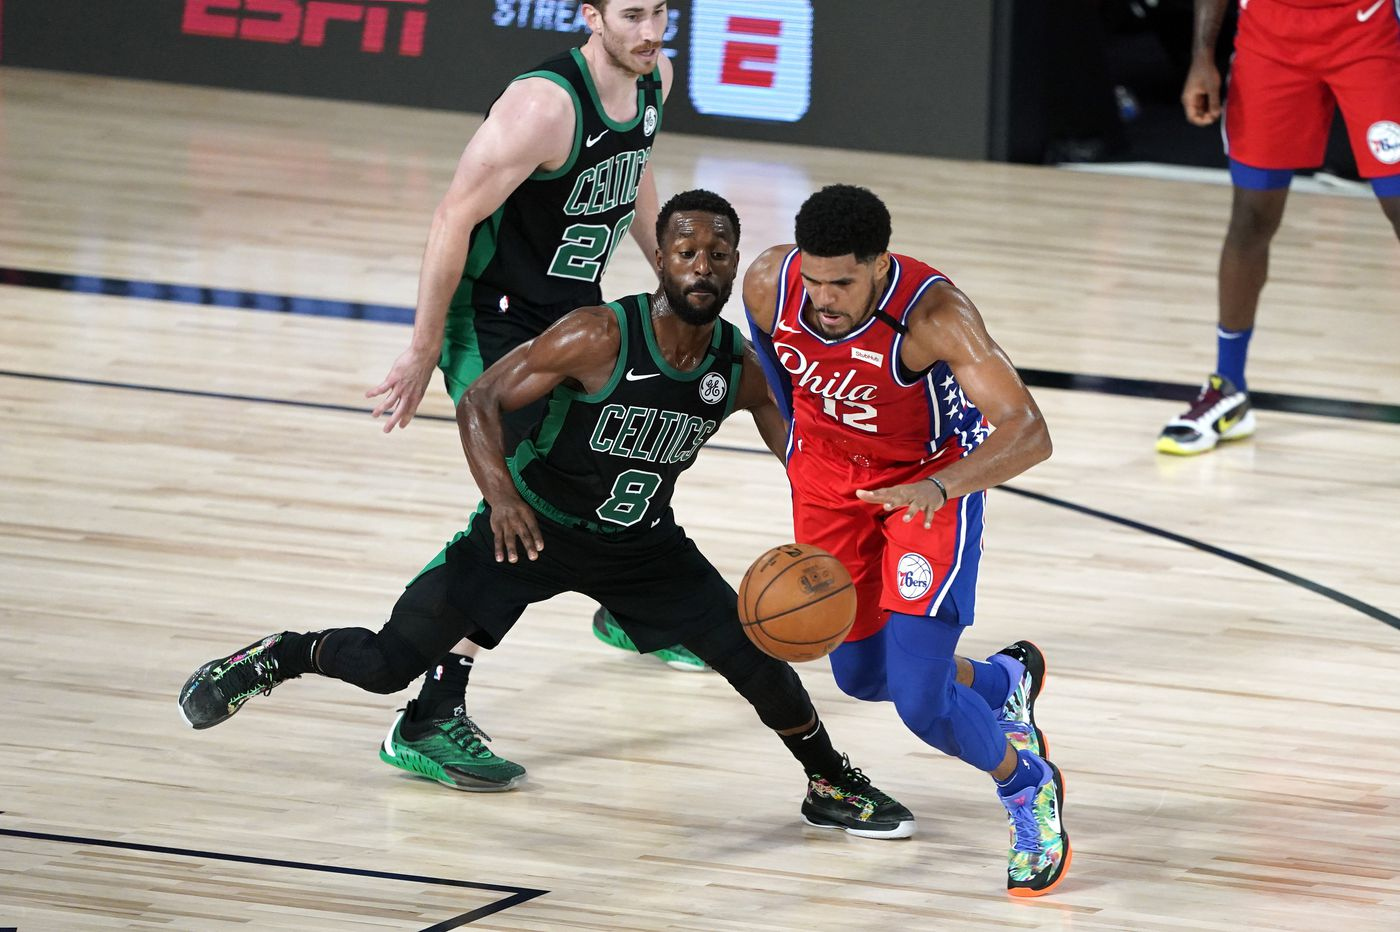 Celtics 109, Sixers 101: Embiid's quick start; Horford's strong post-ups; Smart play by Boston